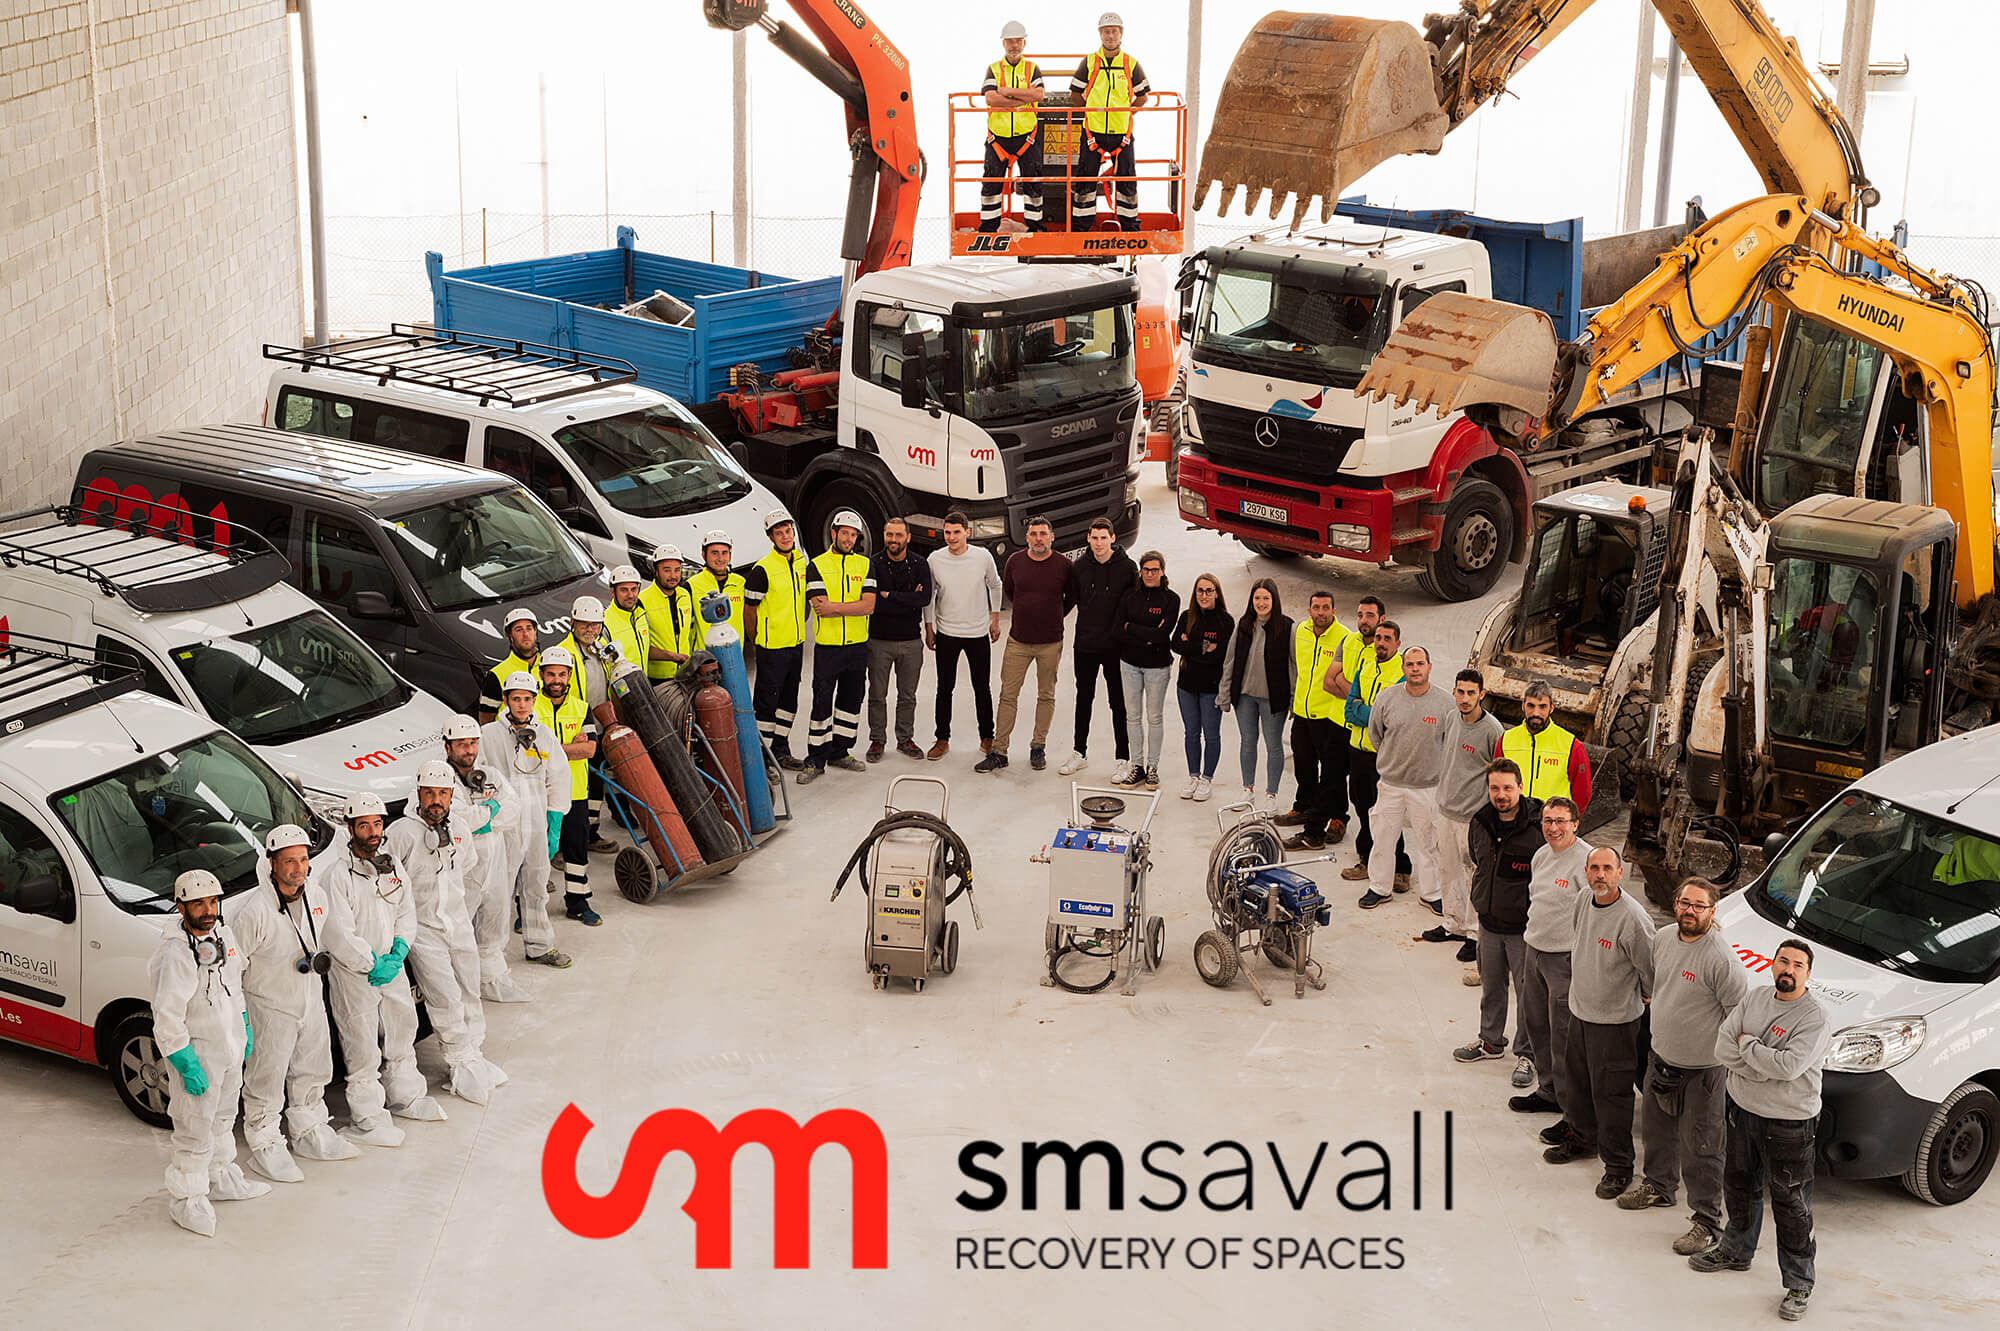 Recovery of spaces SM SAVALL